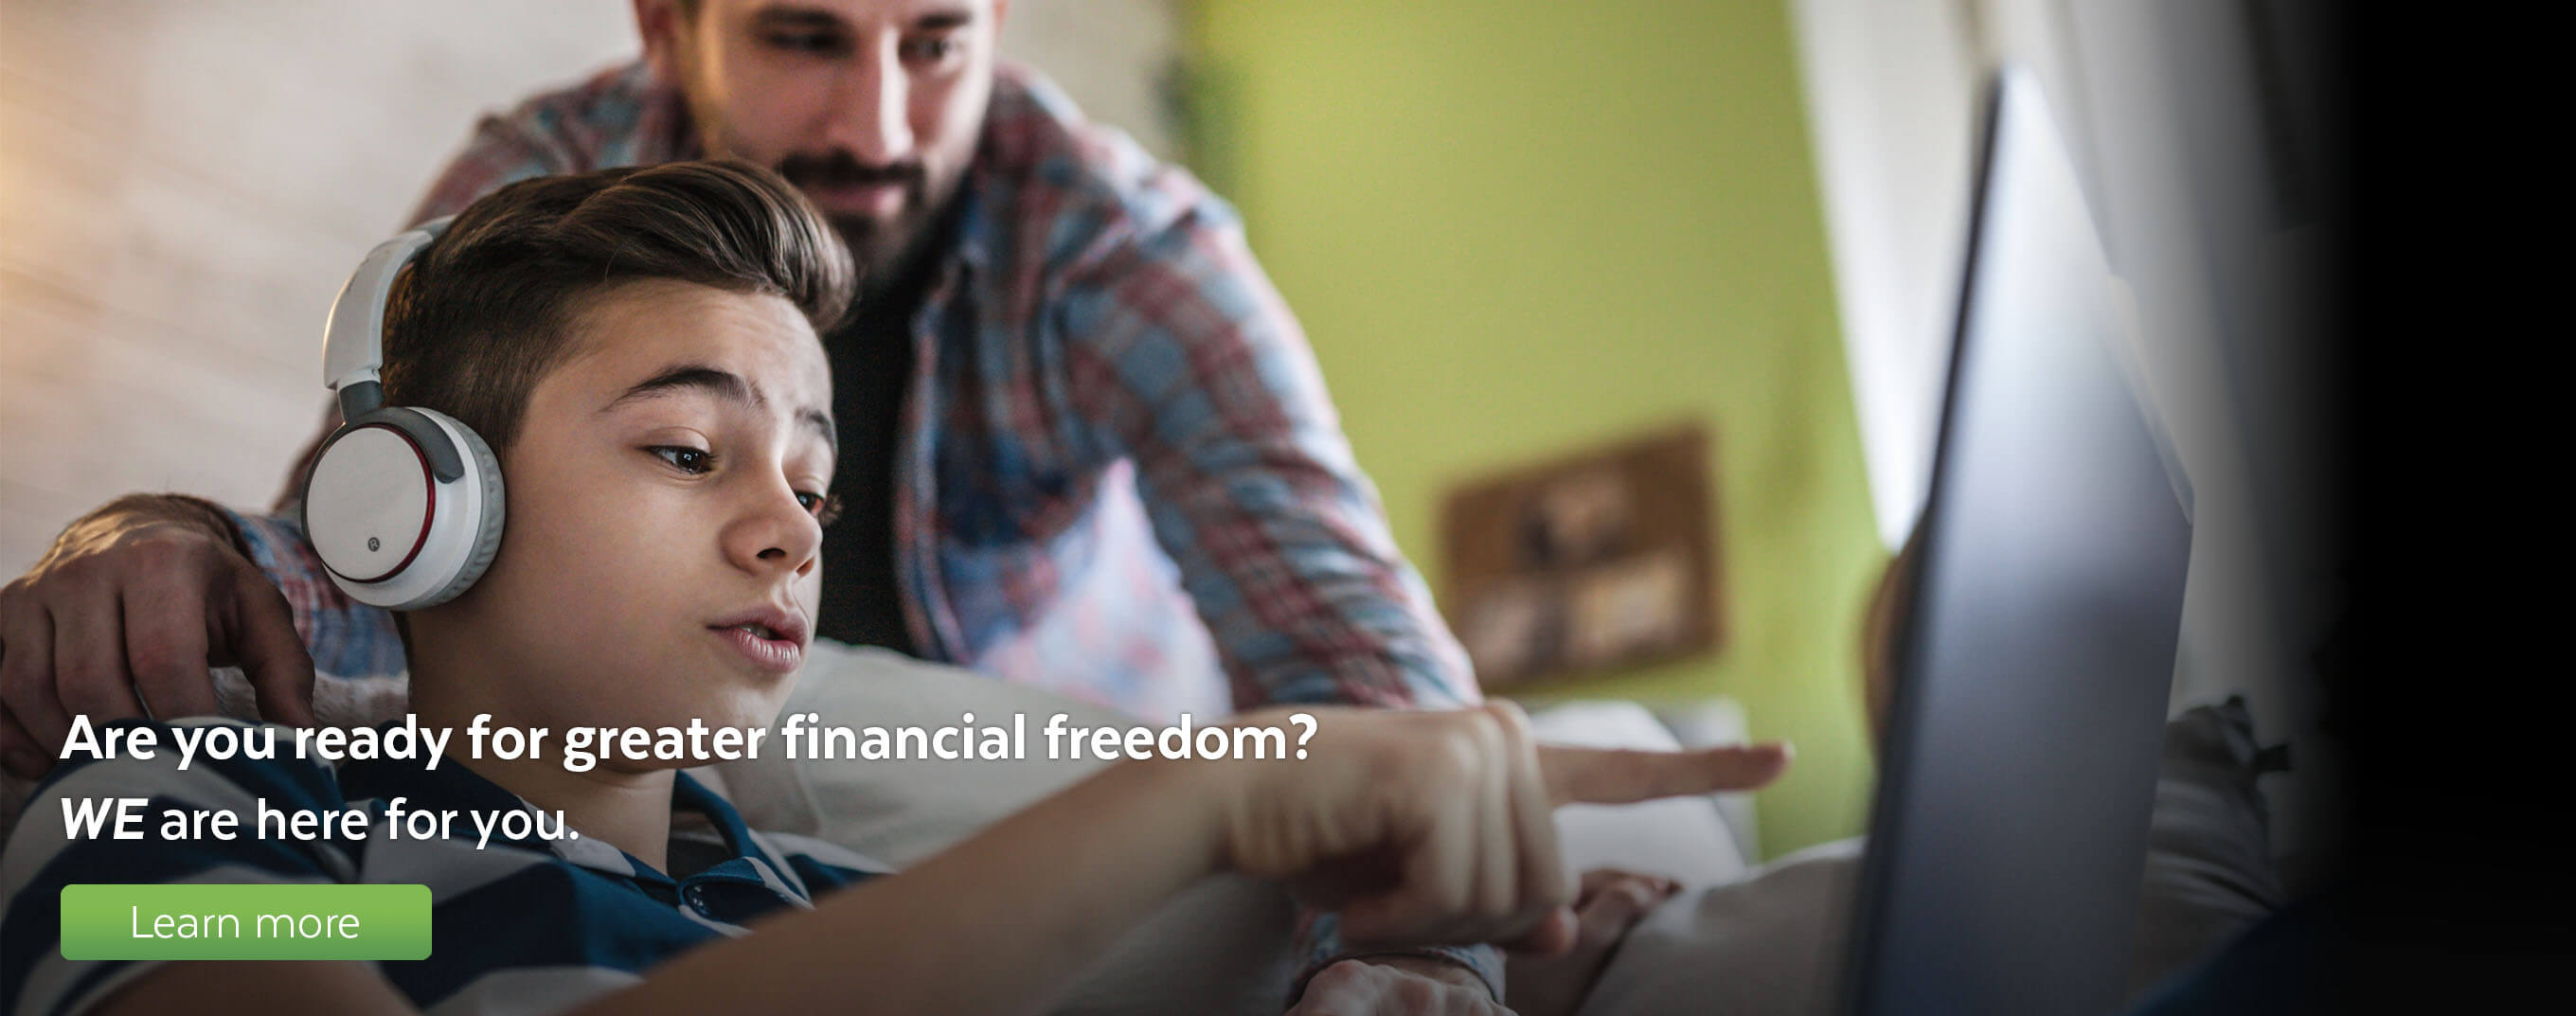 Are you ready for greater financial freedom? WE are here for you.